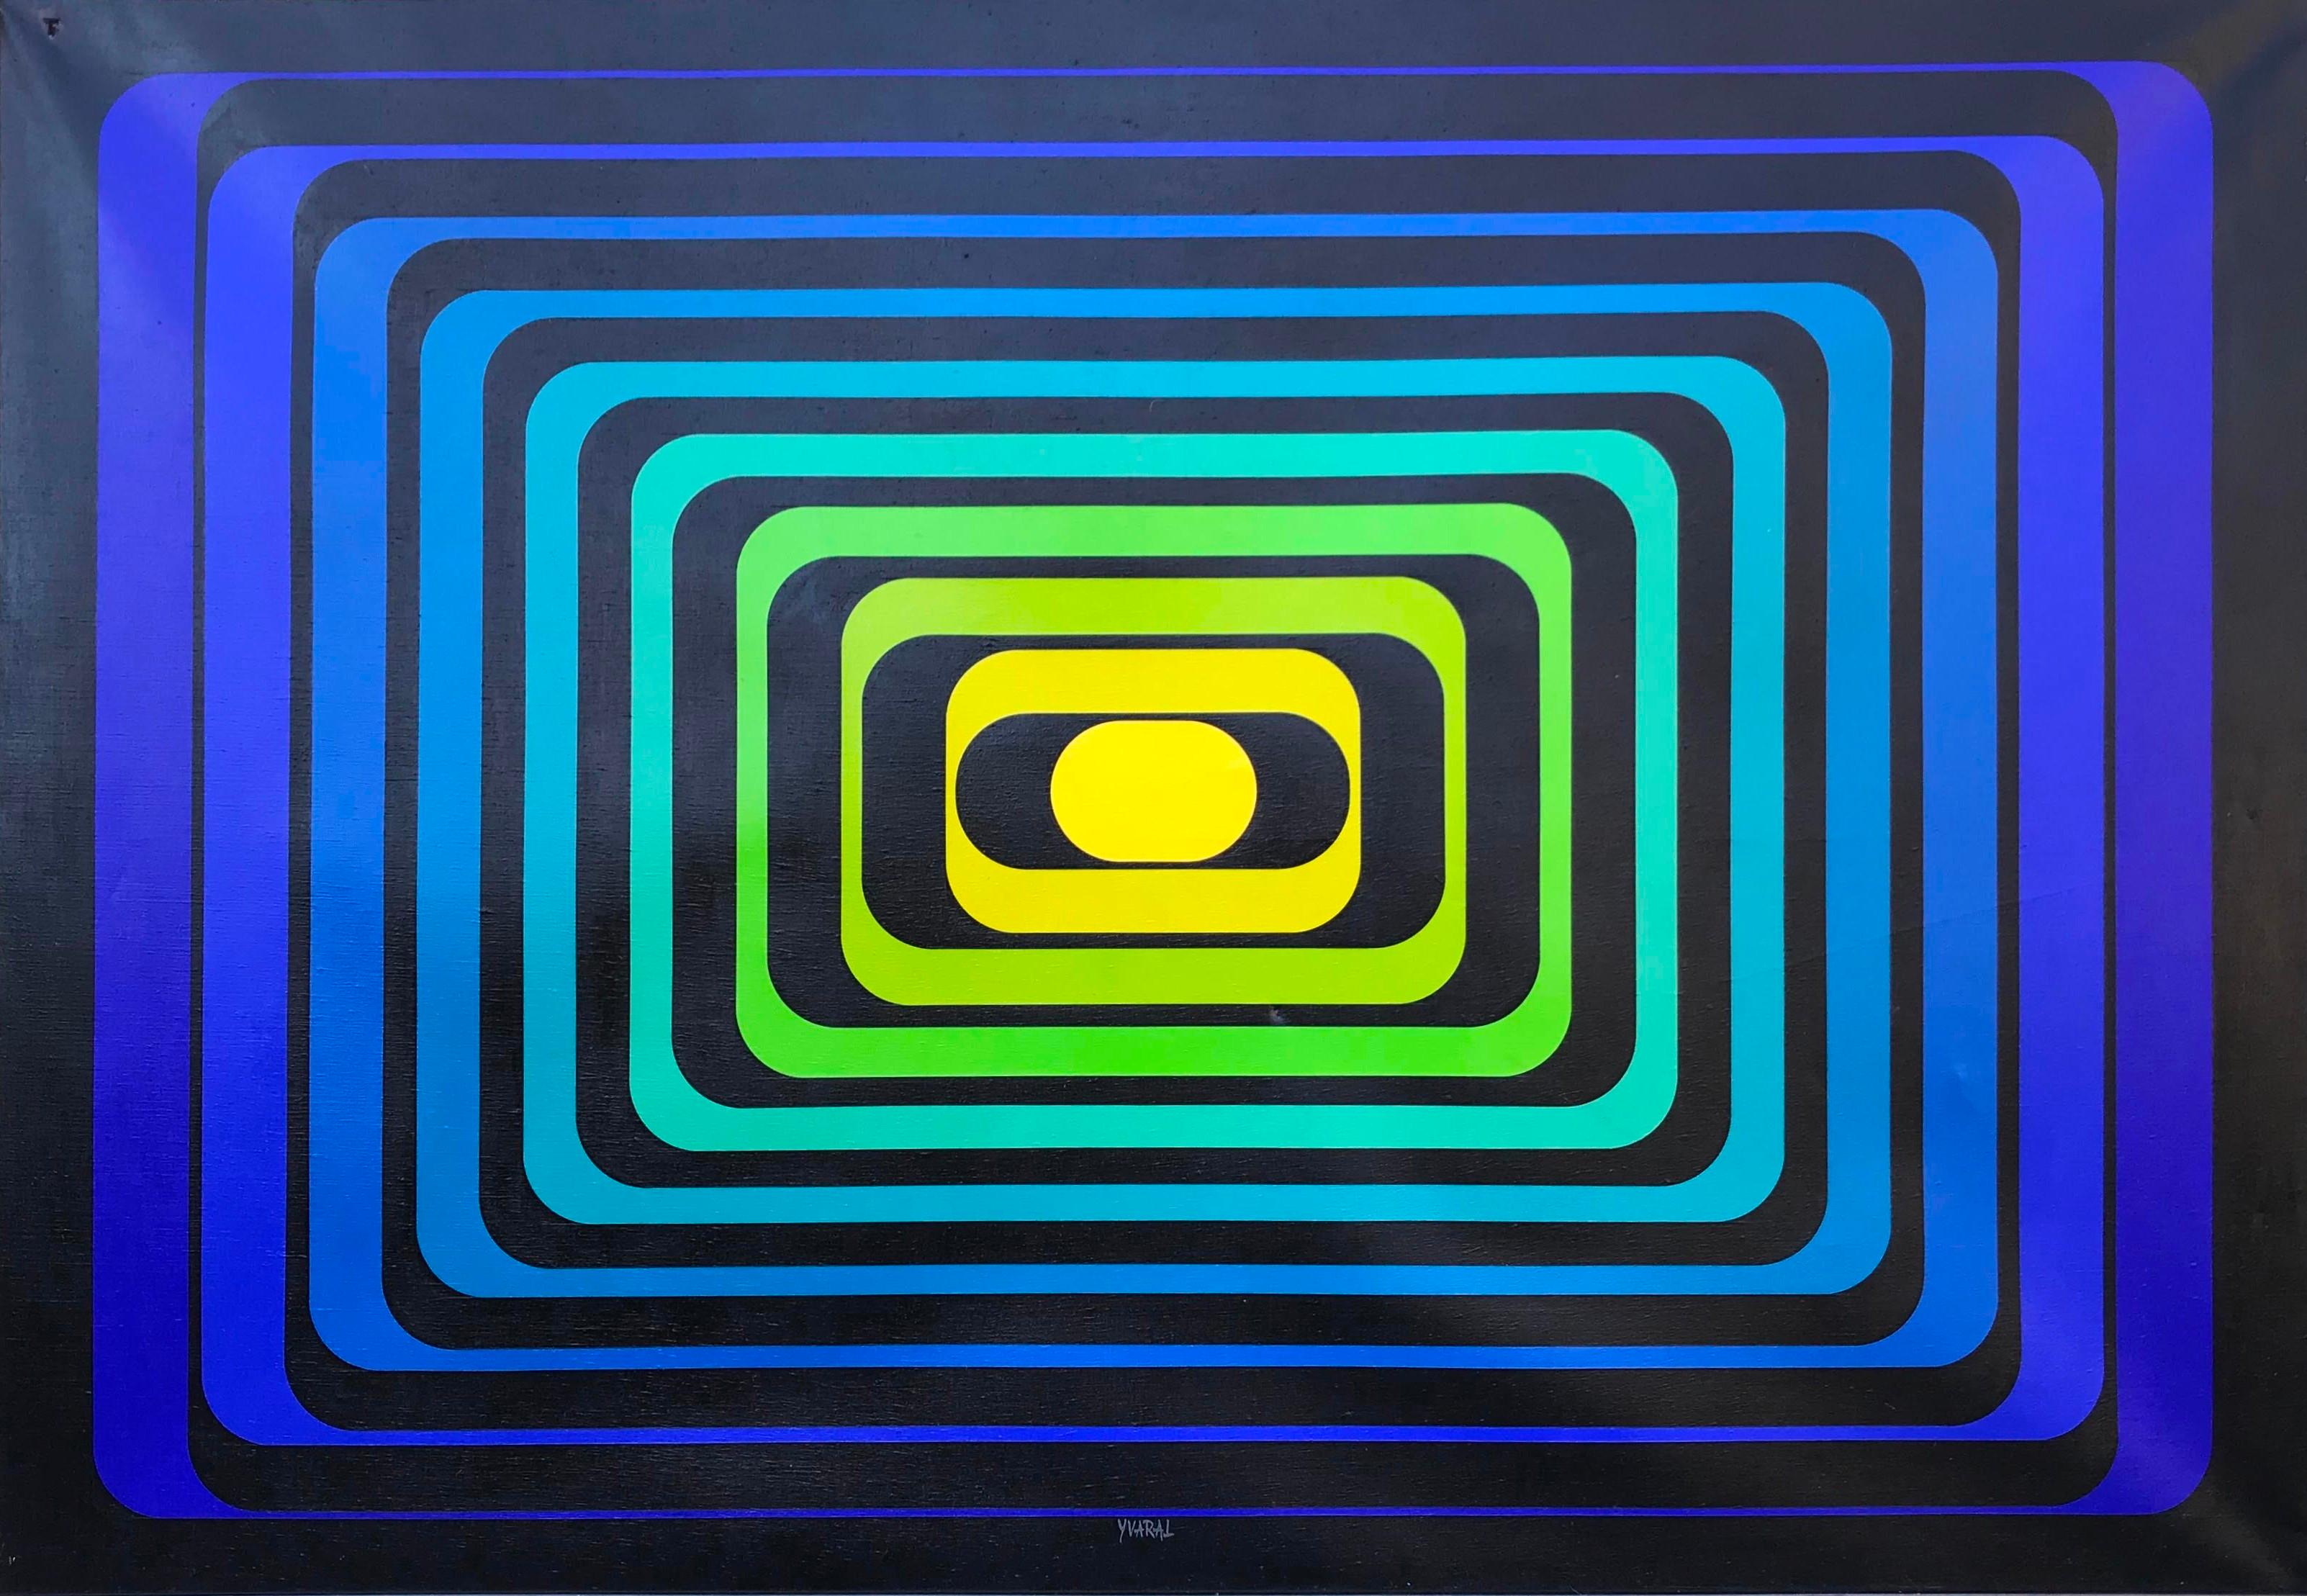 JEAN-PIERRE YVARAL, (French, 1934-2002), Progression Polychrome B, 1971, acrylic on canvas, 43 1/2 x 63 in., frame: 44 x 63 1/2 in.